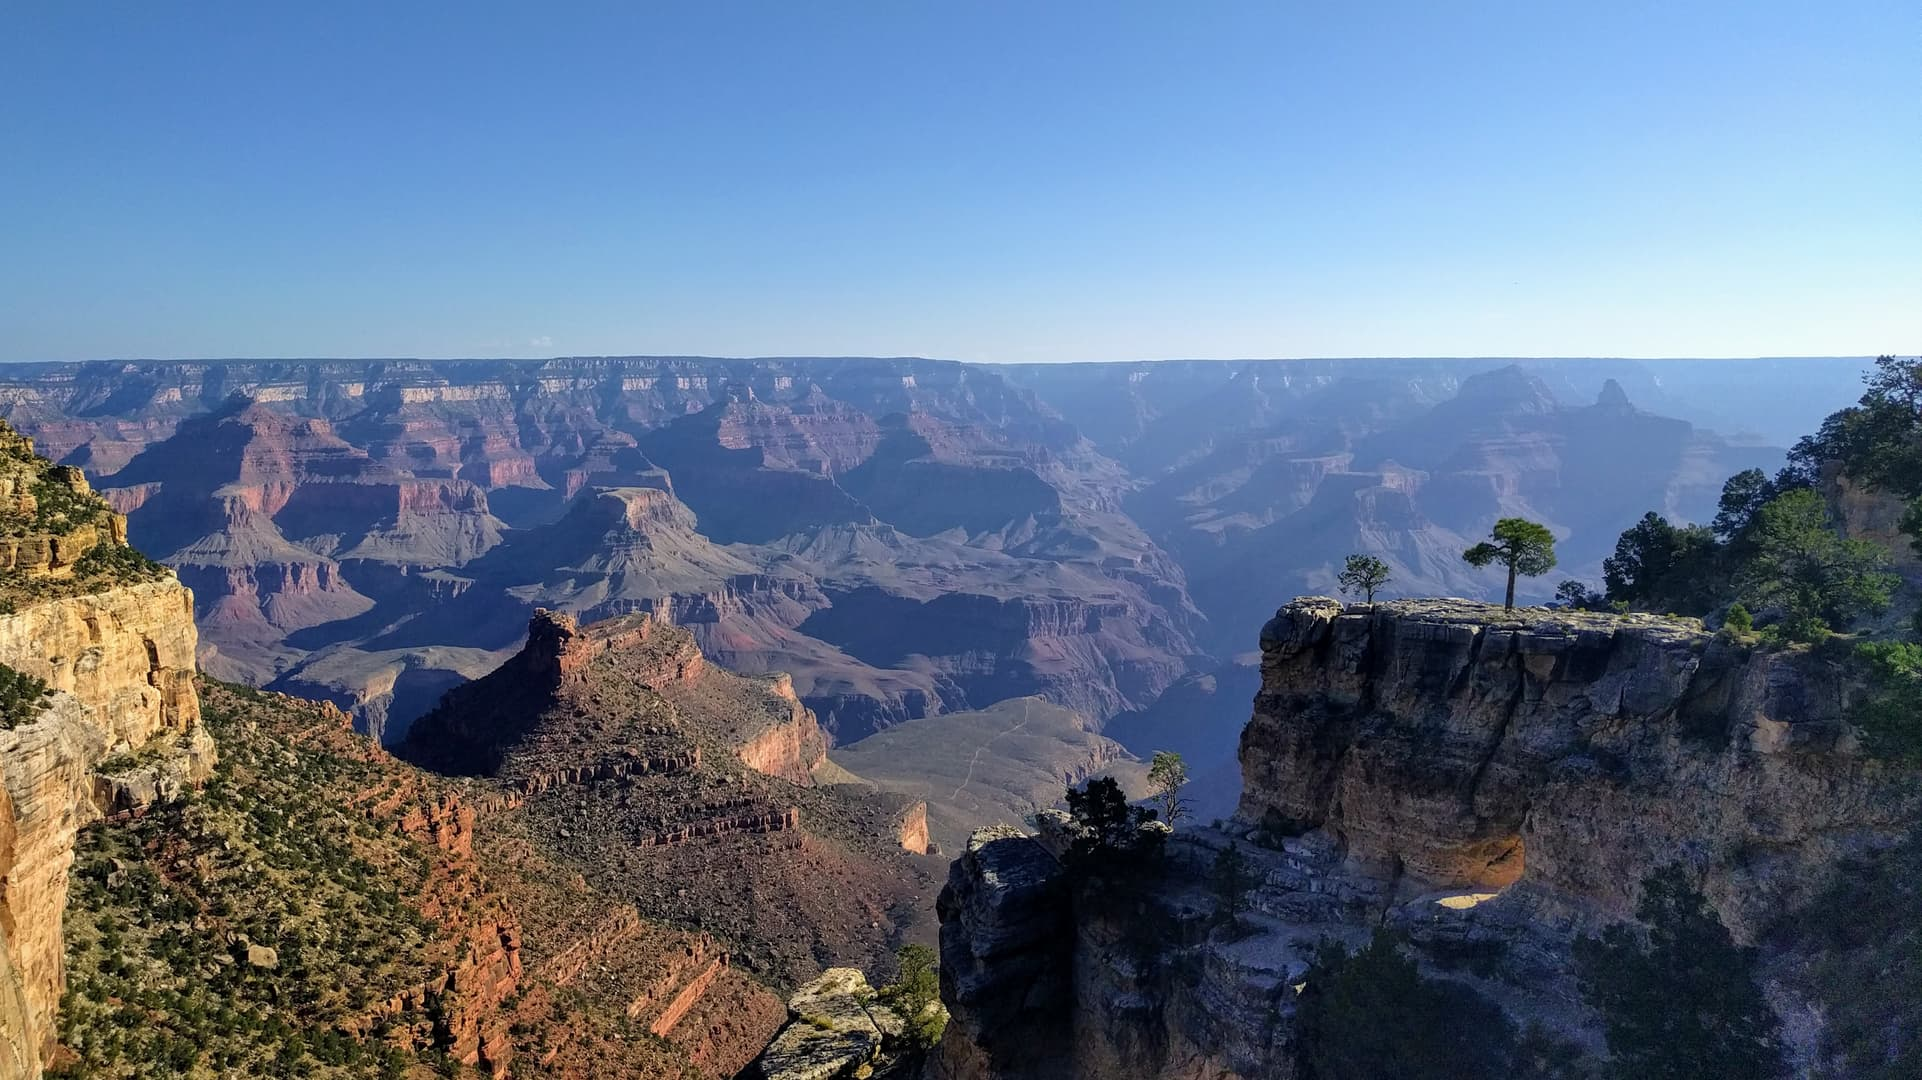 A view across the Grand Canyon. Morning fog partially obscurs the far side. In the foreground, part of the South Rim juts into the Canyon, forming an island-like structure. Small trees grow on it.